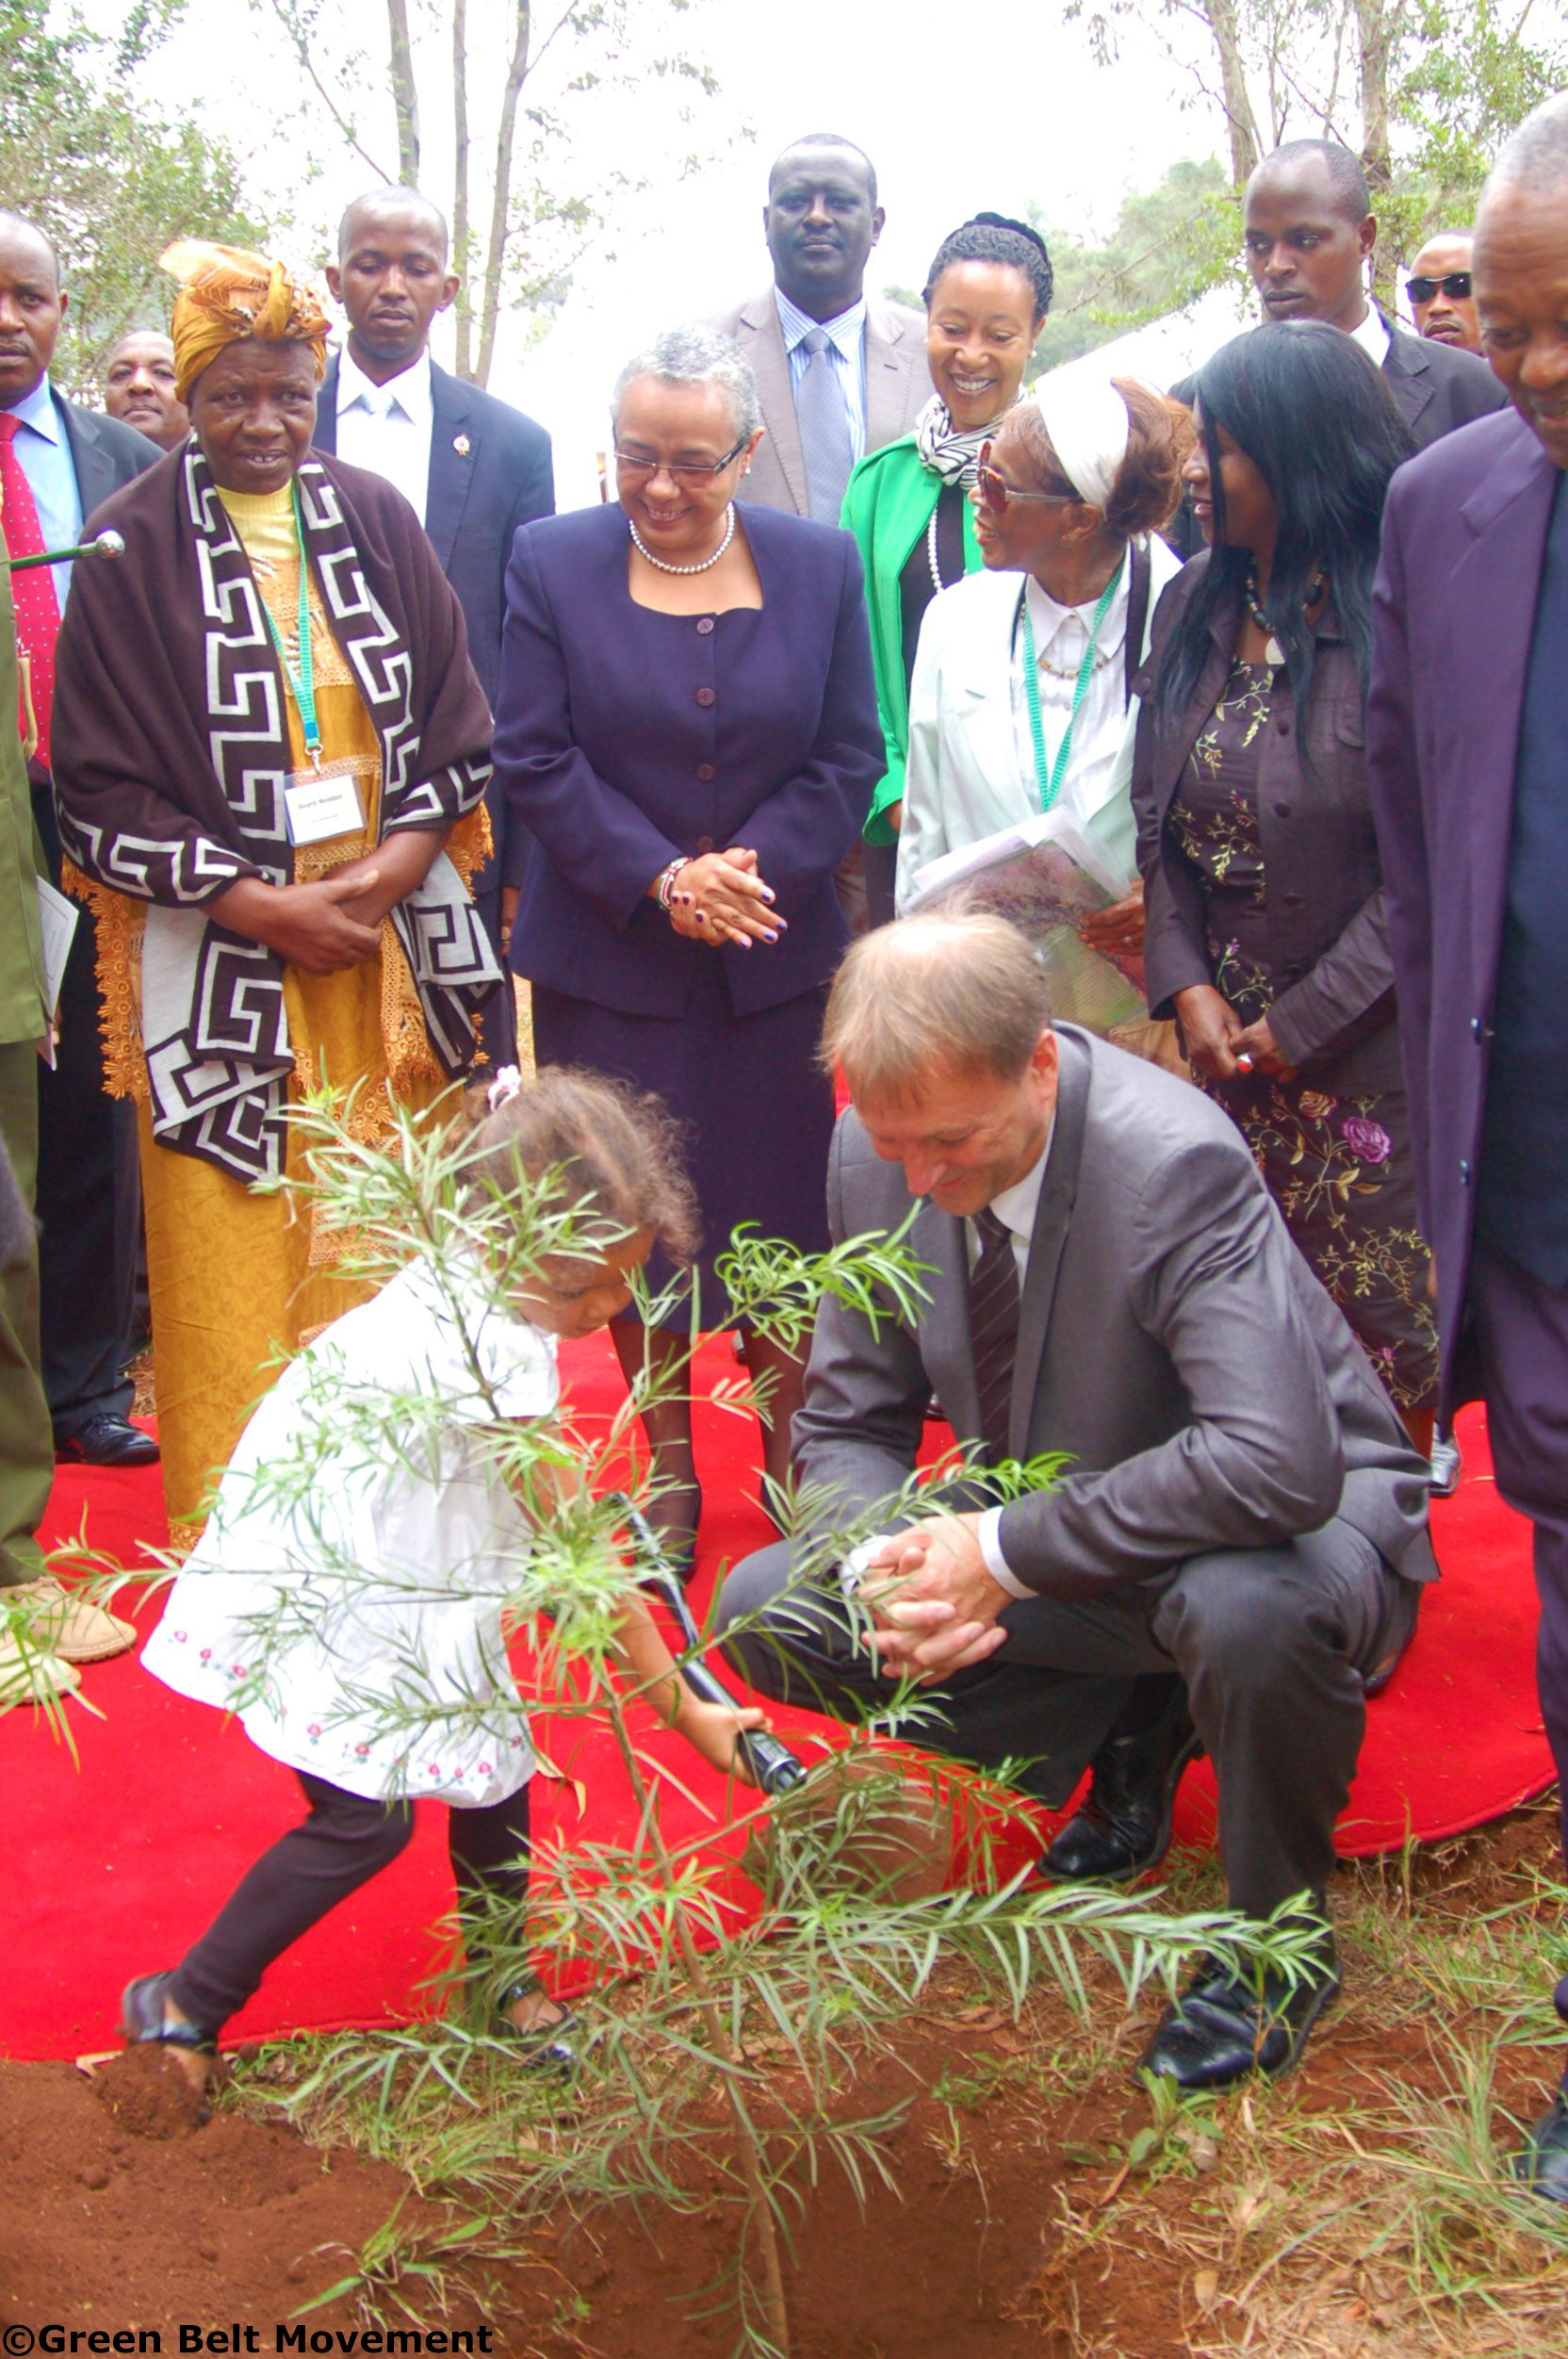 From left to right: GBM Honorary Treasurer Mrs Lillian Wanjiru Njehu, First Lady Margaret Kenyatta, GBM Board Member Prof. Vertistine Mbaya and Cabinet Secretary, Ministry of Environment, Water and Natural Resources Prof. Judi Wakhungu look on as Ruth Wangari Lindkvist, granddaughter to Wangari Maathai plants a commemorative tree in Karura Forest during the 2nd memorial anniversary